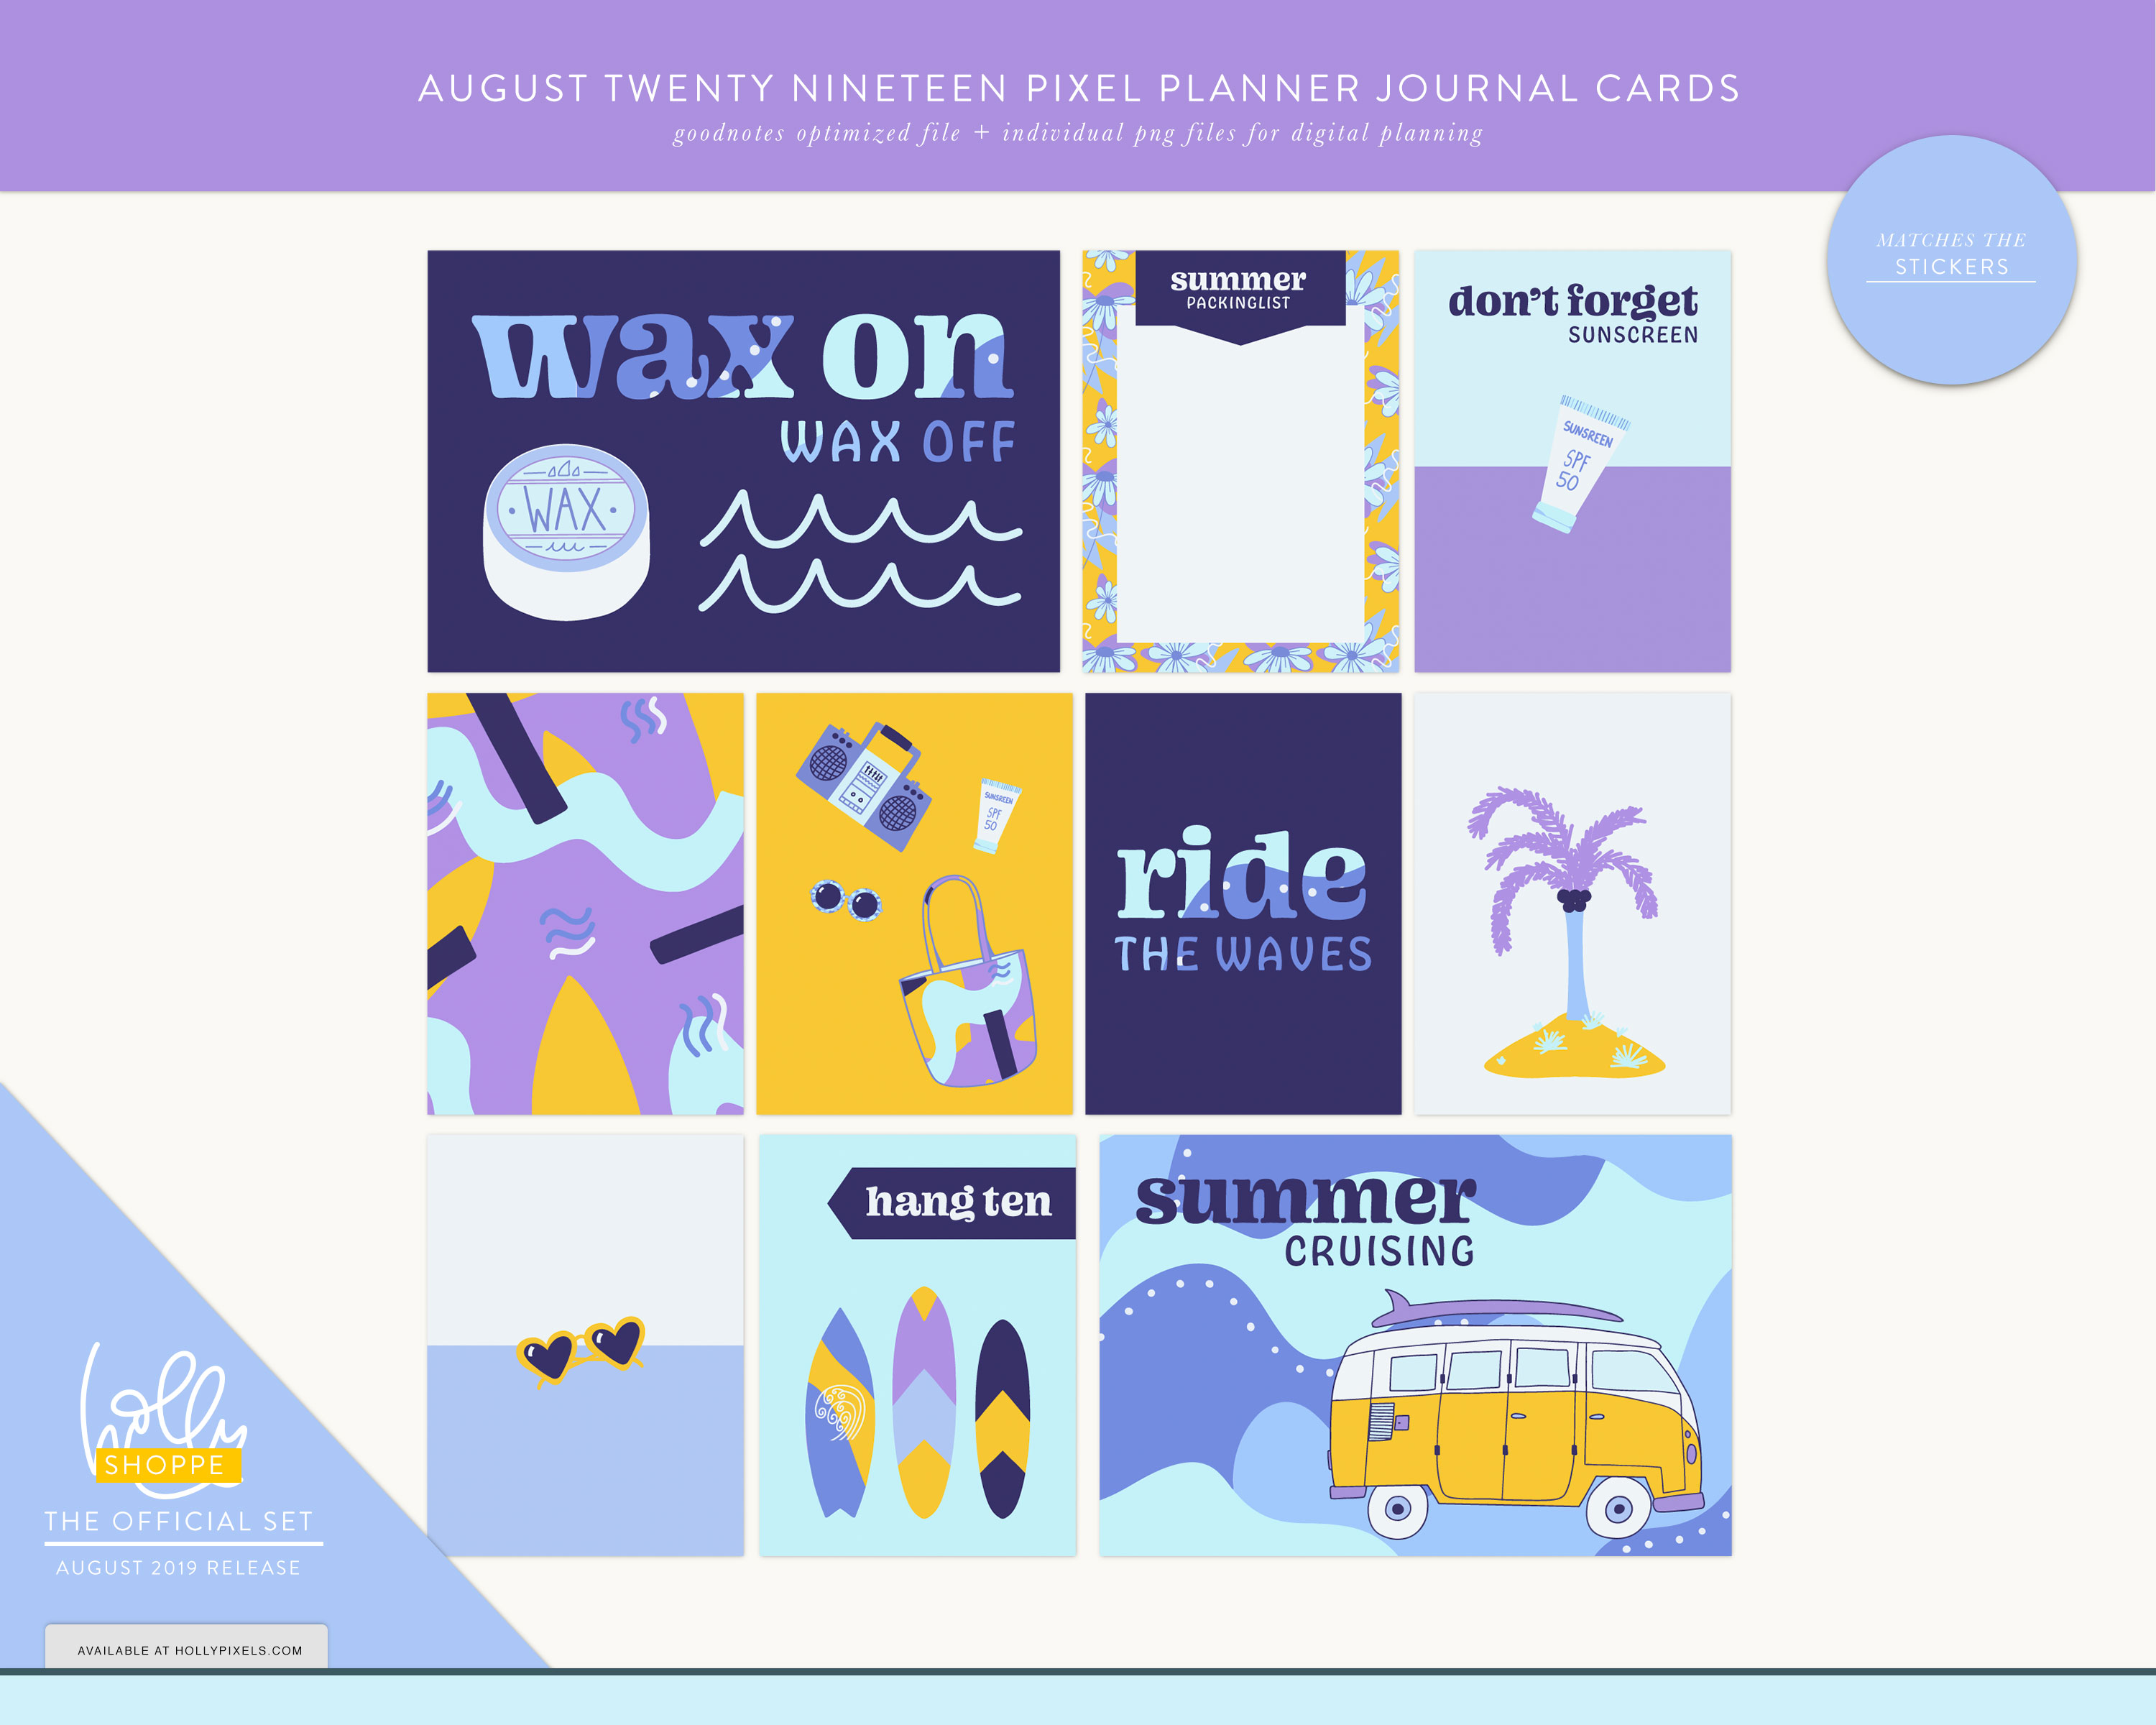 Plan Cute in August with Your Digital Planner 4